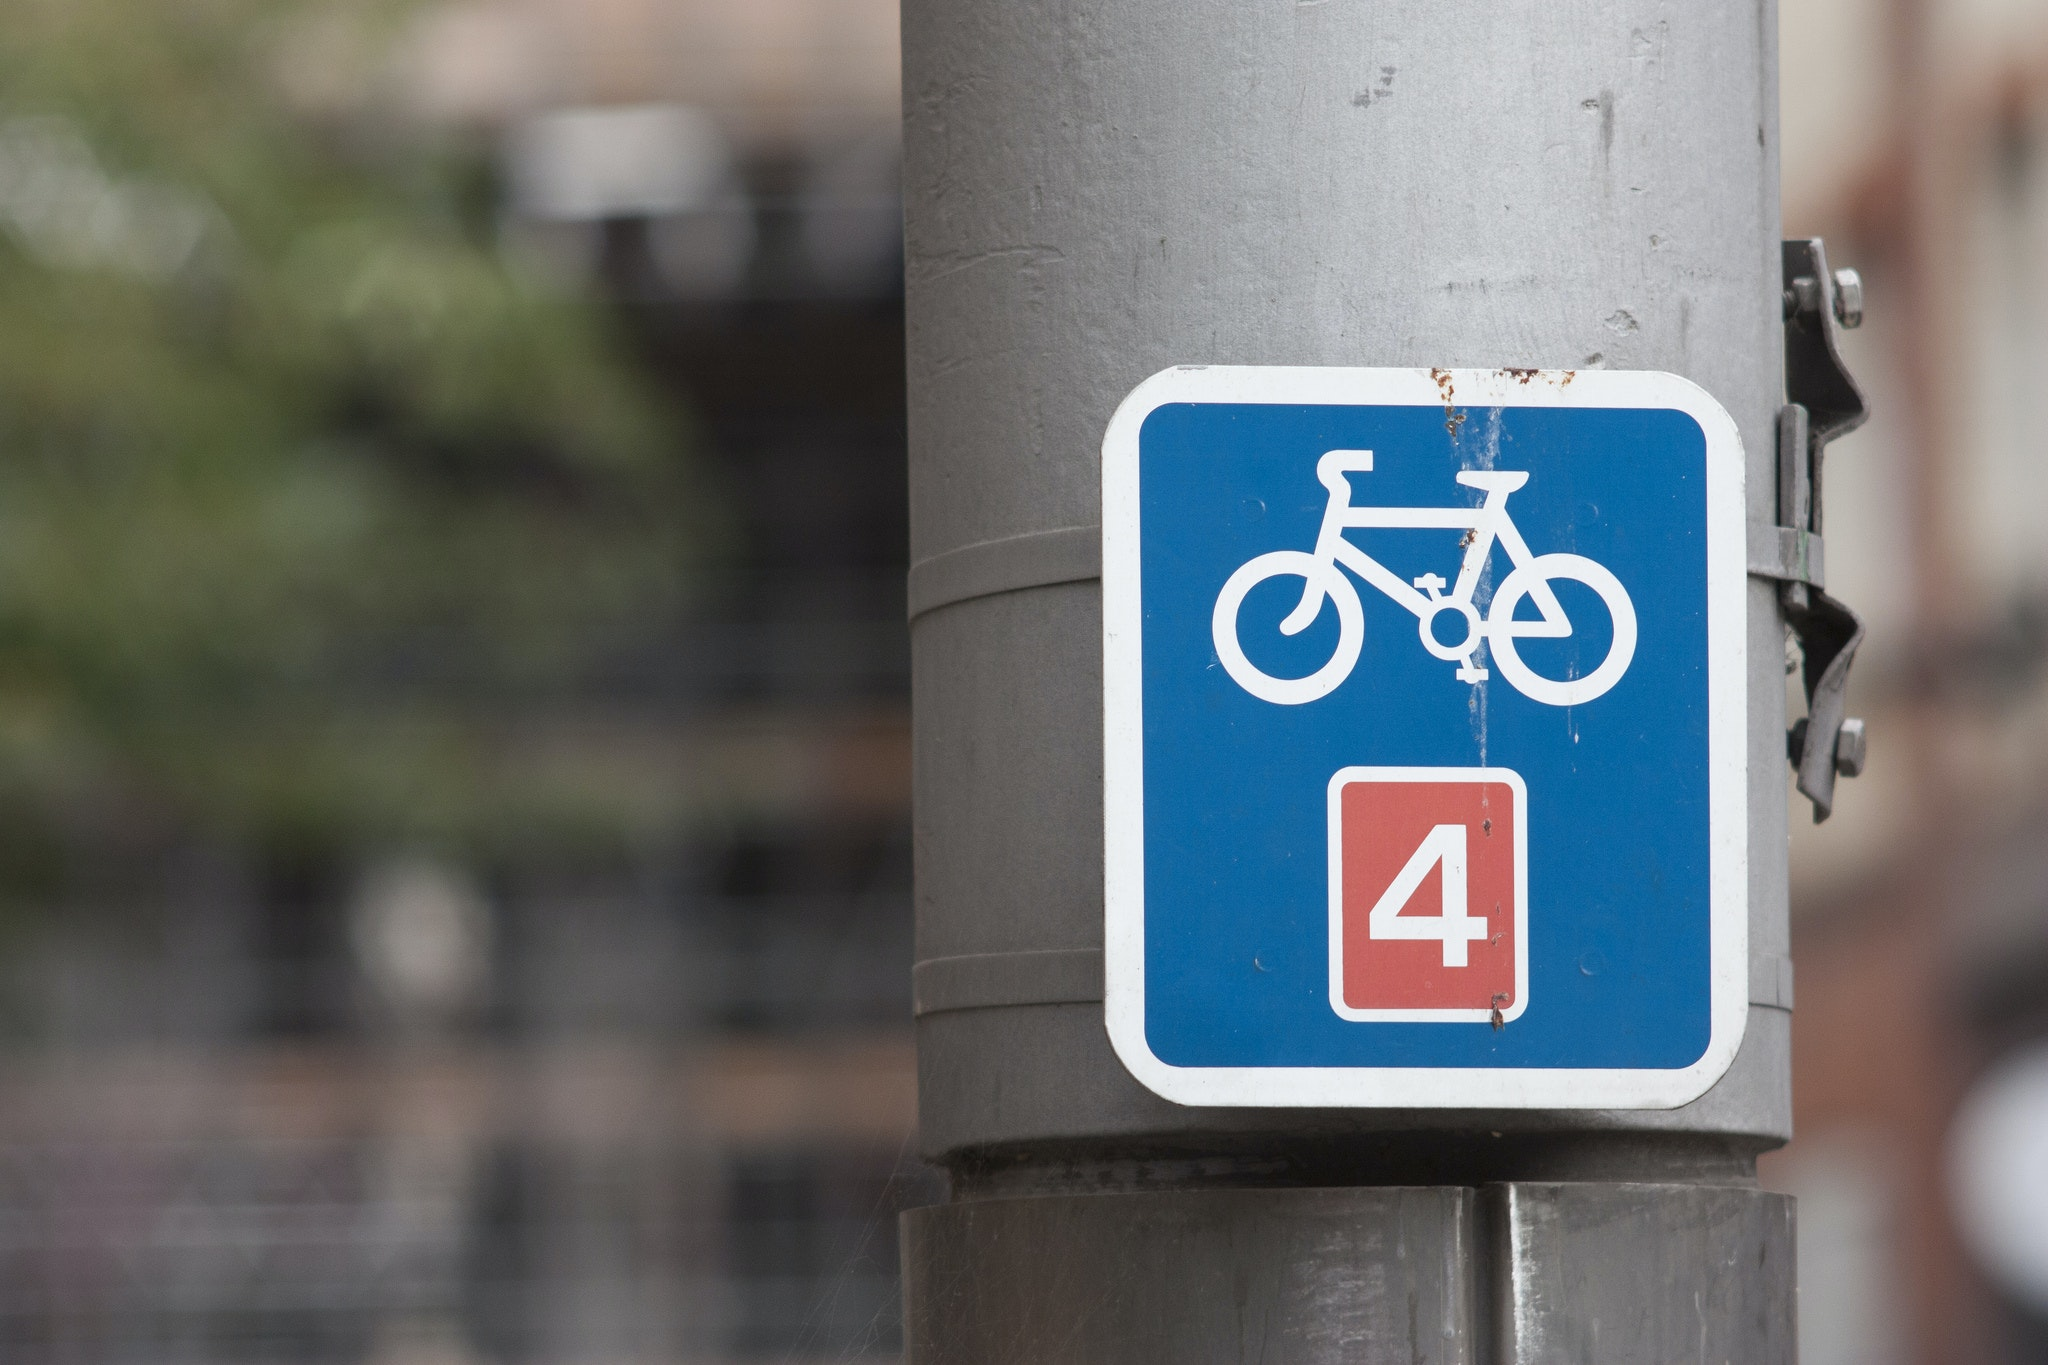 Cycling lane, cycle path, commuting, sign, London (Pic: Dimitri Hon via Flickr Creative Commons)